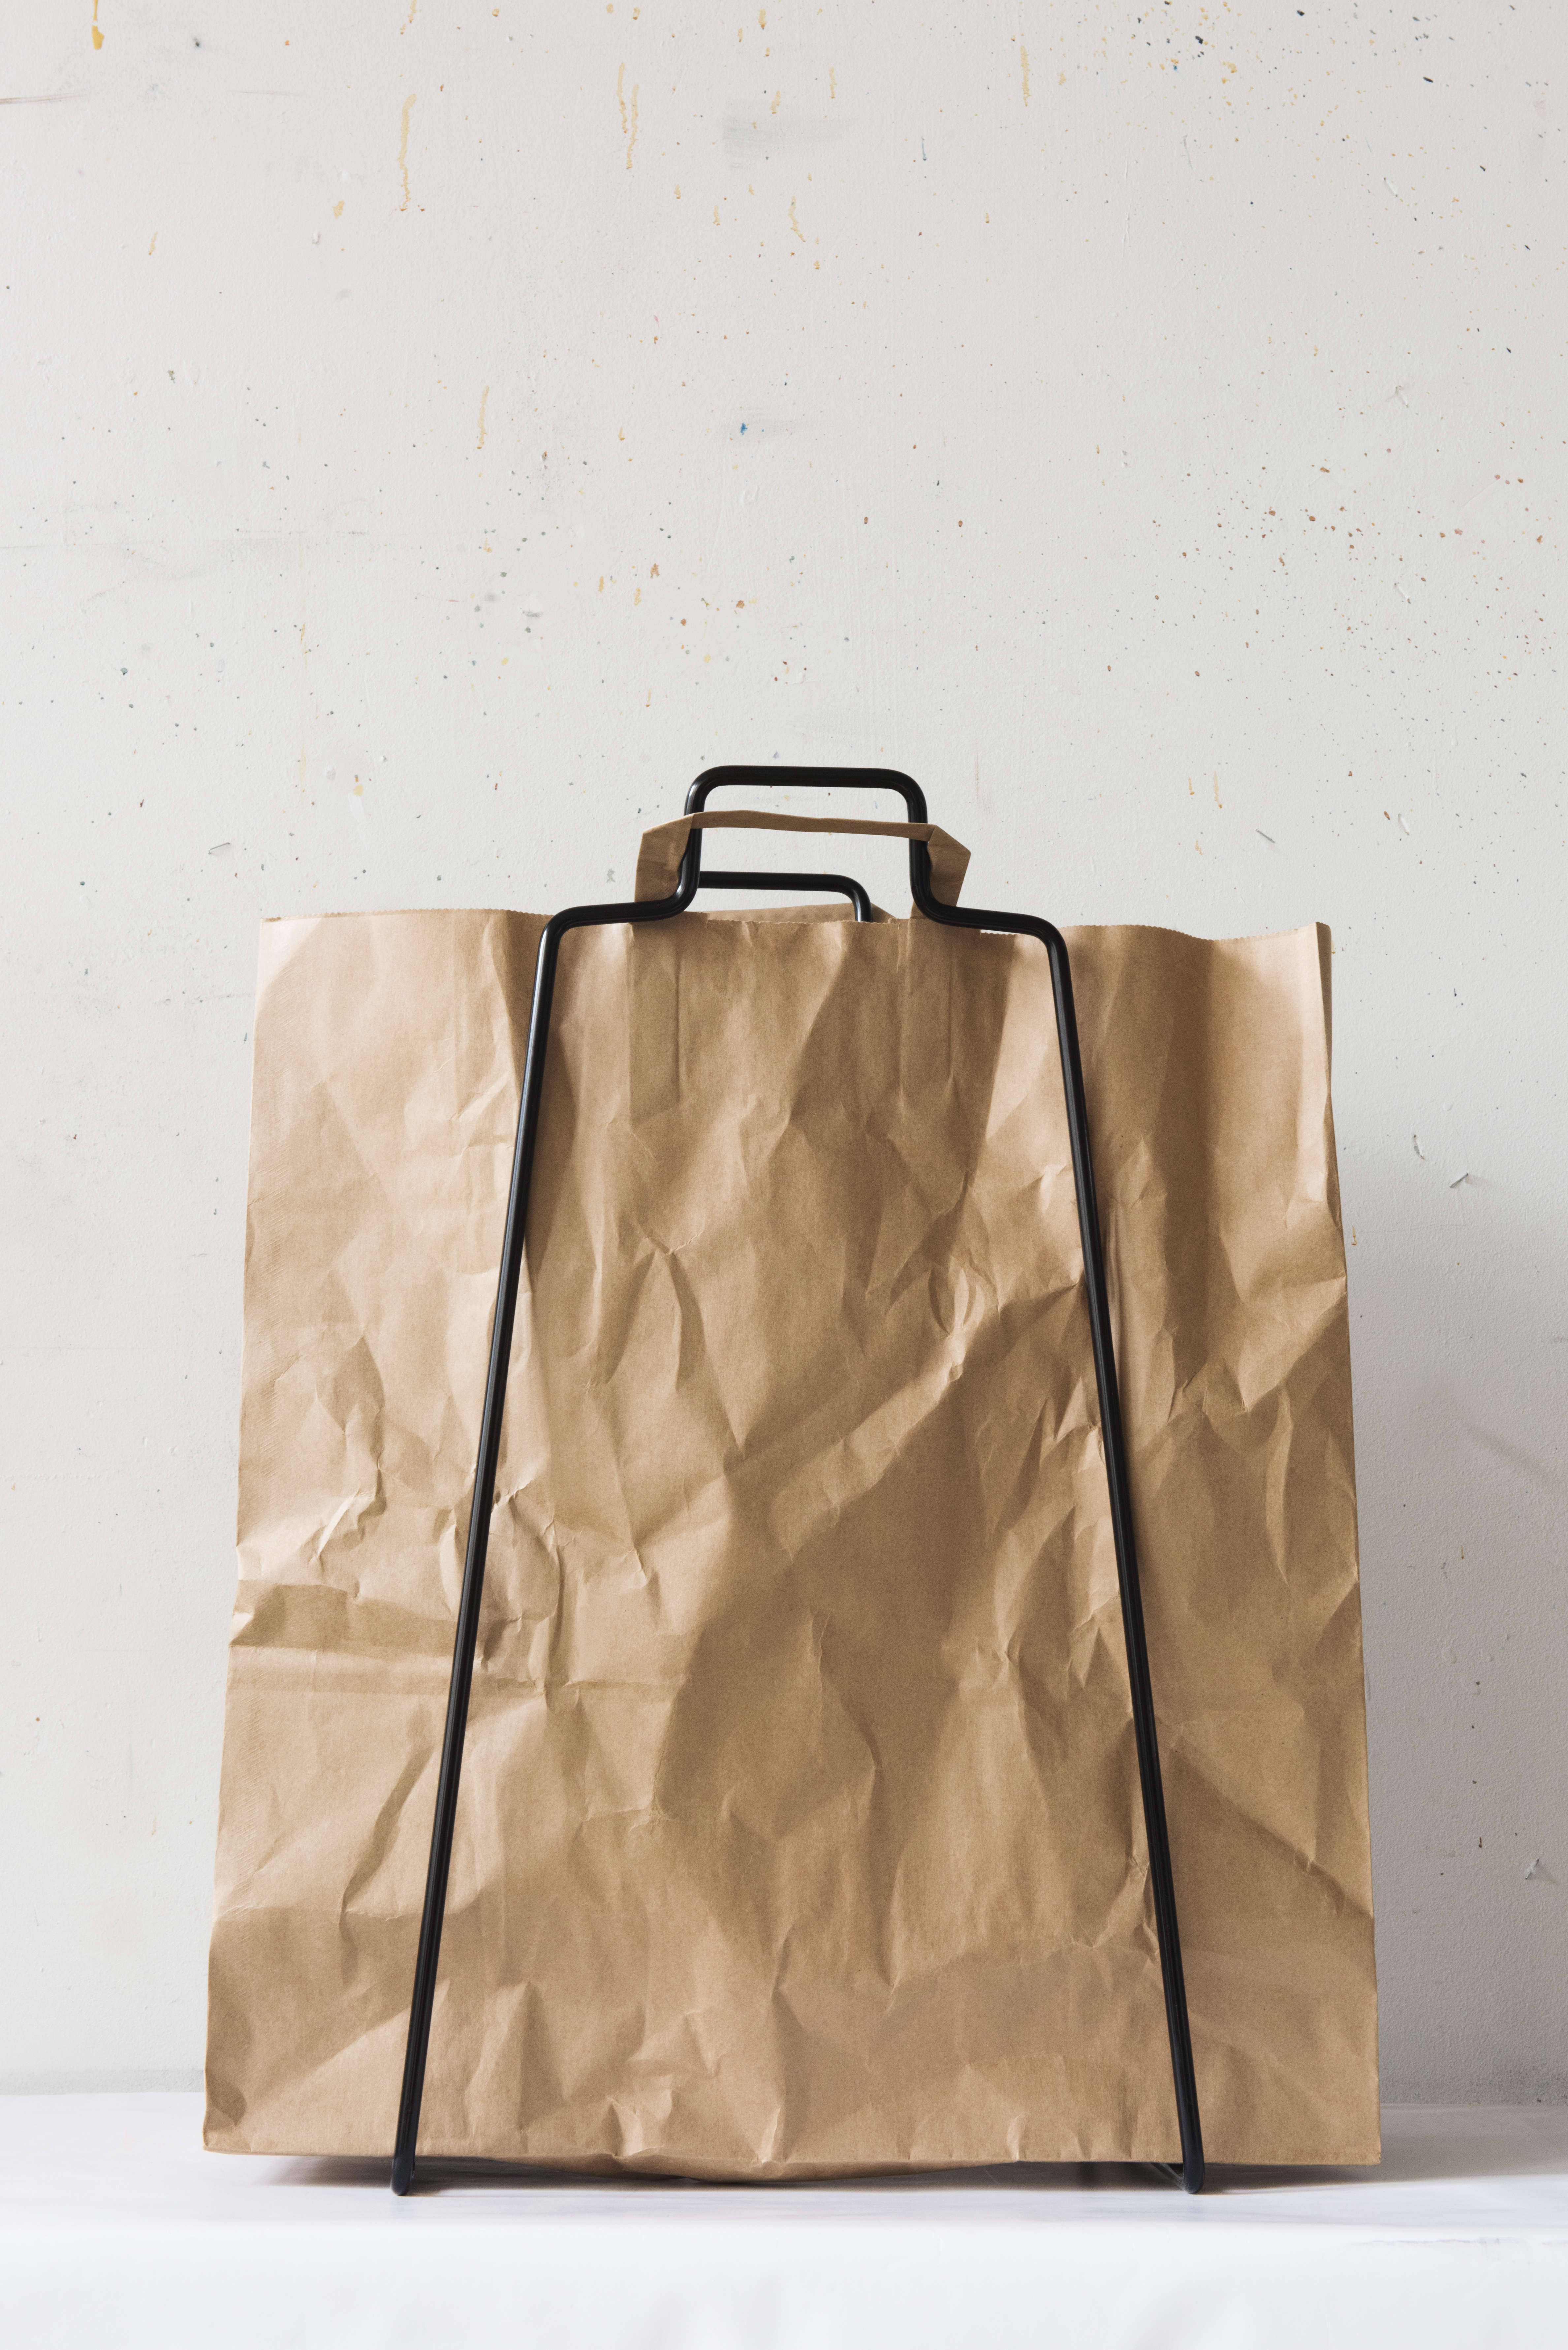 Everyday Design Finland Brown Paper Bag Helsinki Bag Holder Black